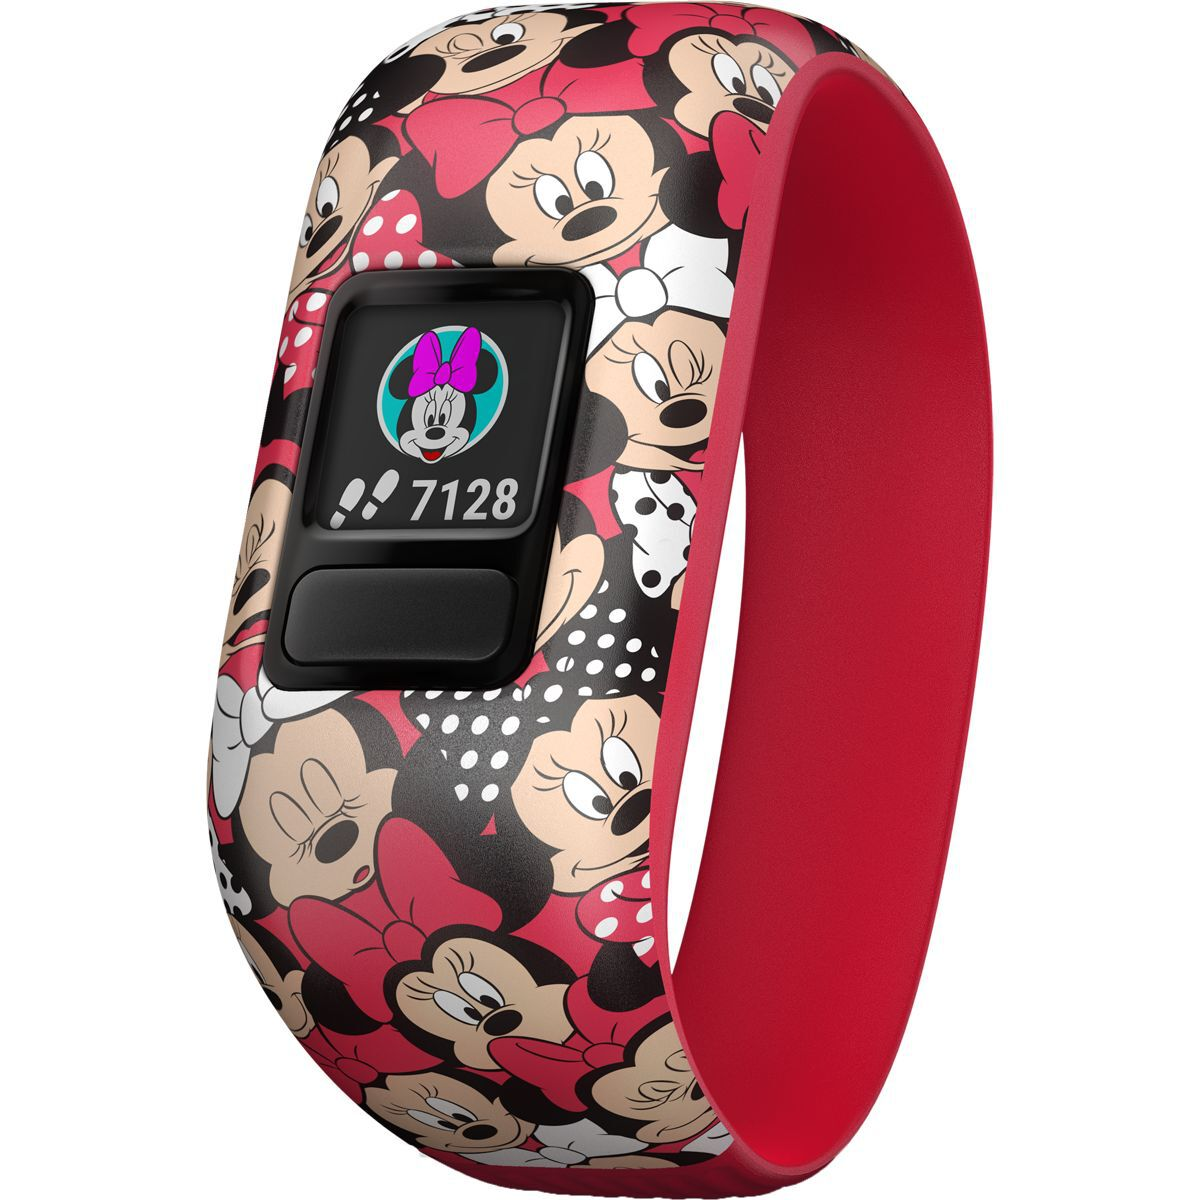 Minnie Maus Küche Vivofit Jr Disney Minnie Maus